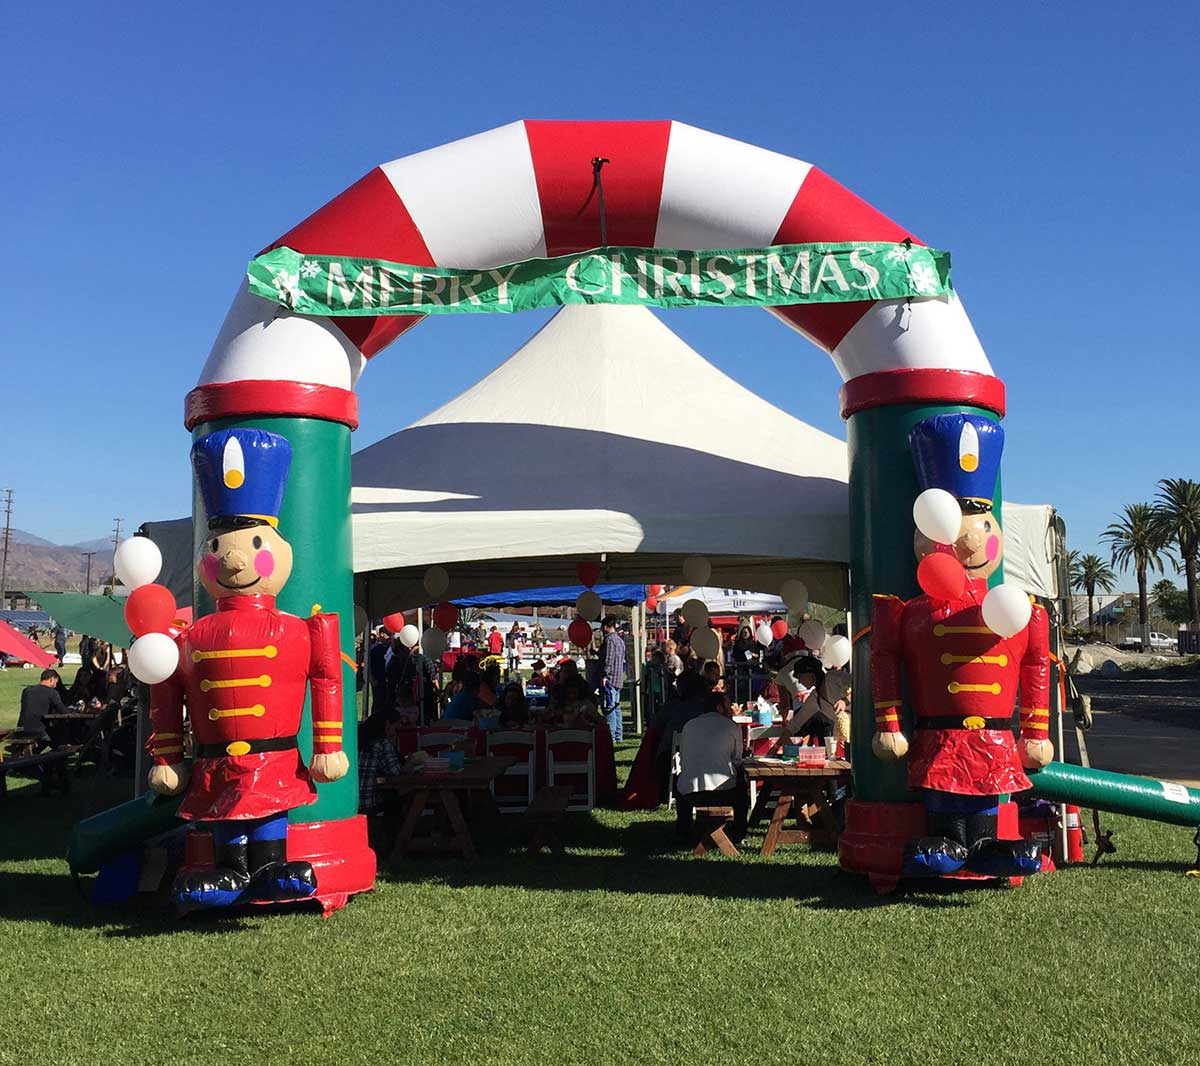 Christmas Decorations Santa Clarita Ca: Christmas Entry Arch Inflatable « Los Angeles PartyWorks